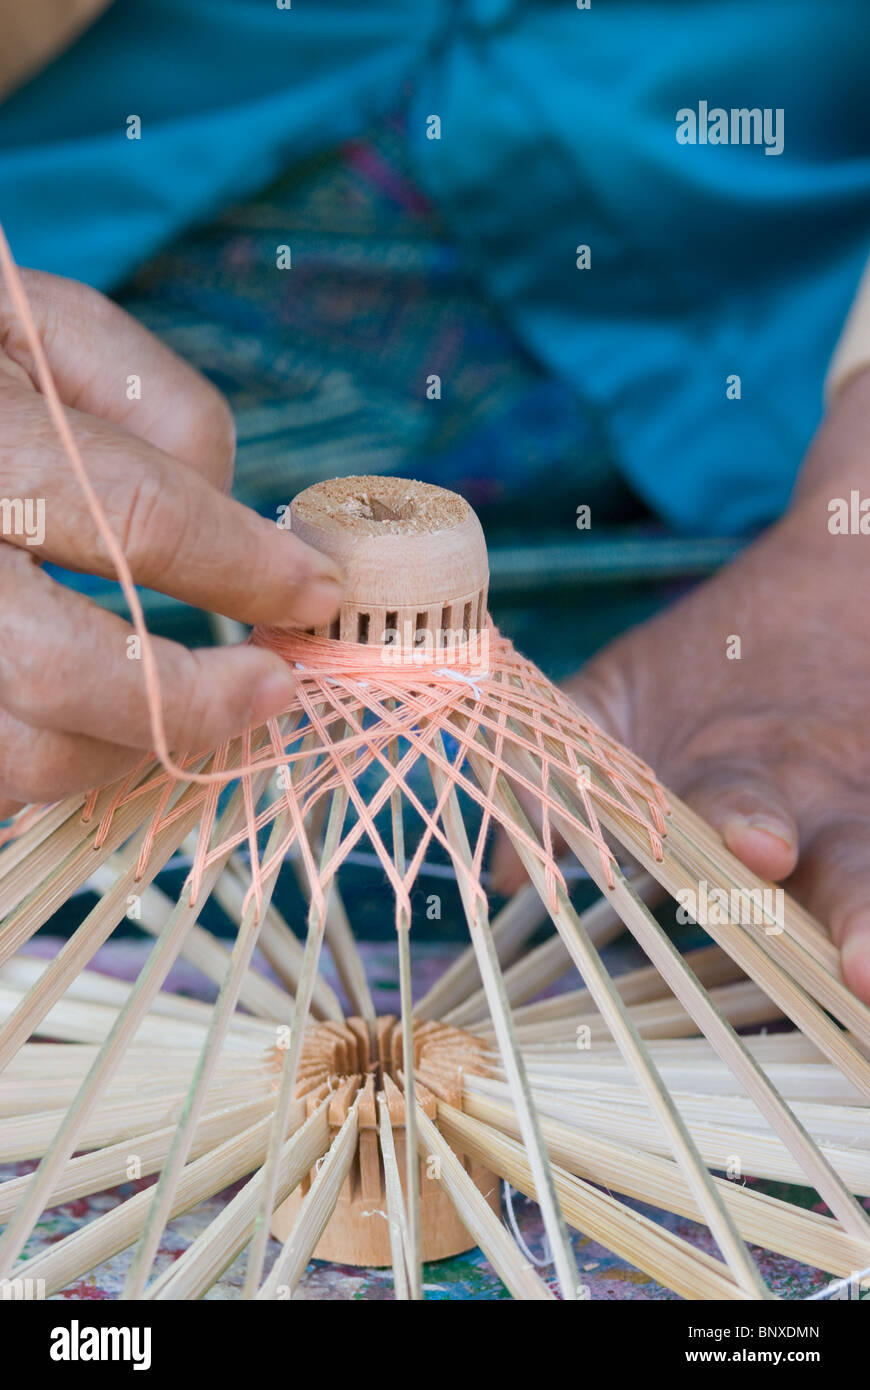 Umbrella Workshop Stockfotos & Umbrella Workshop Bilder - Alamy